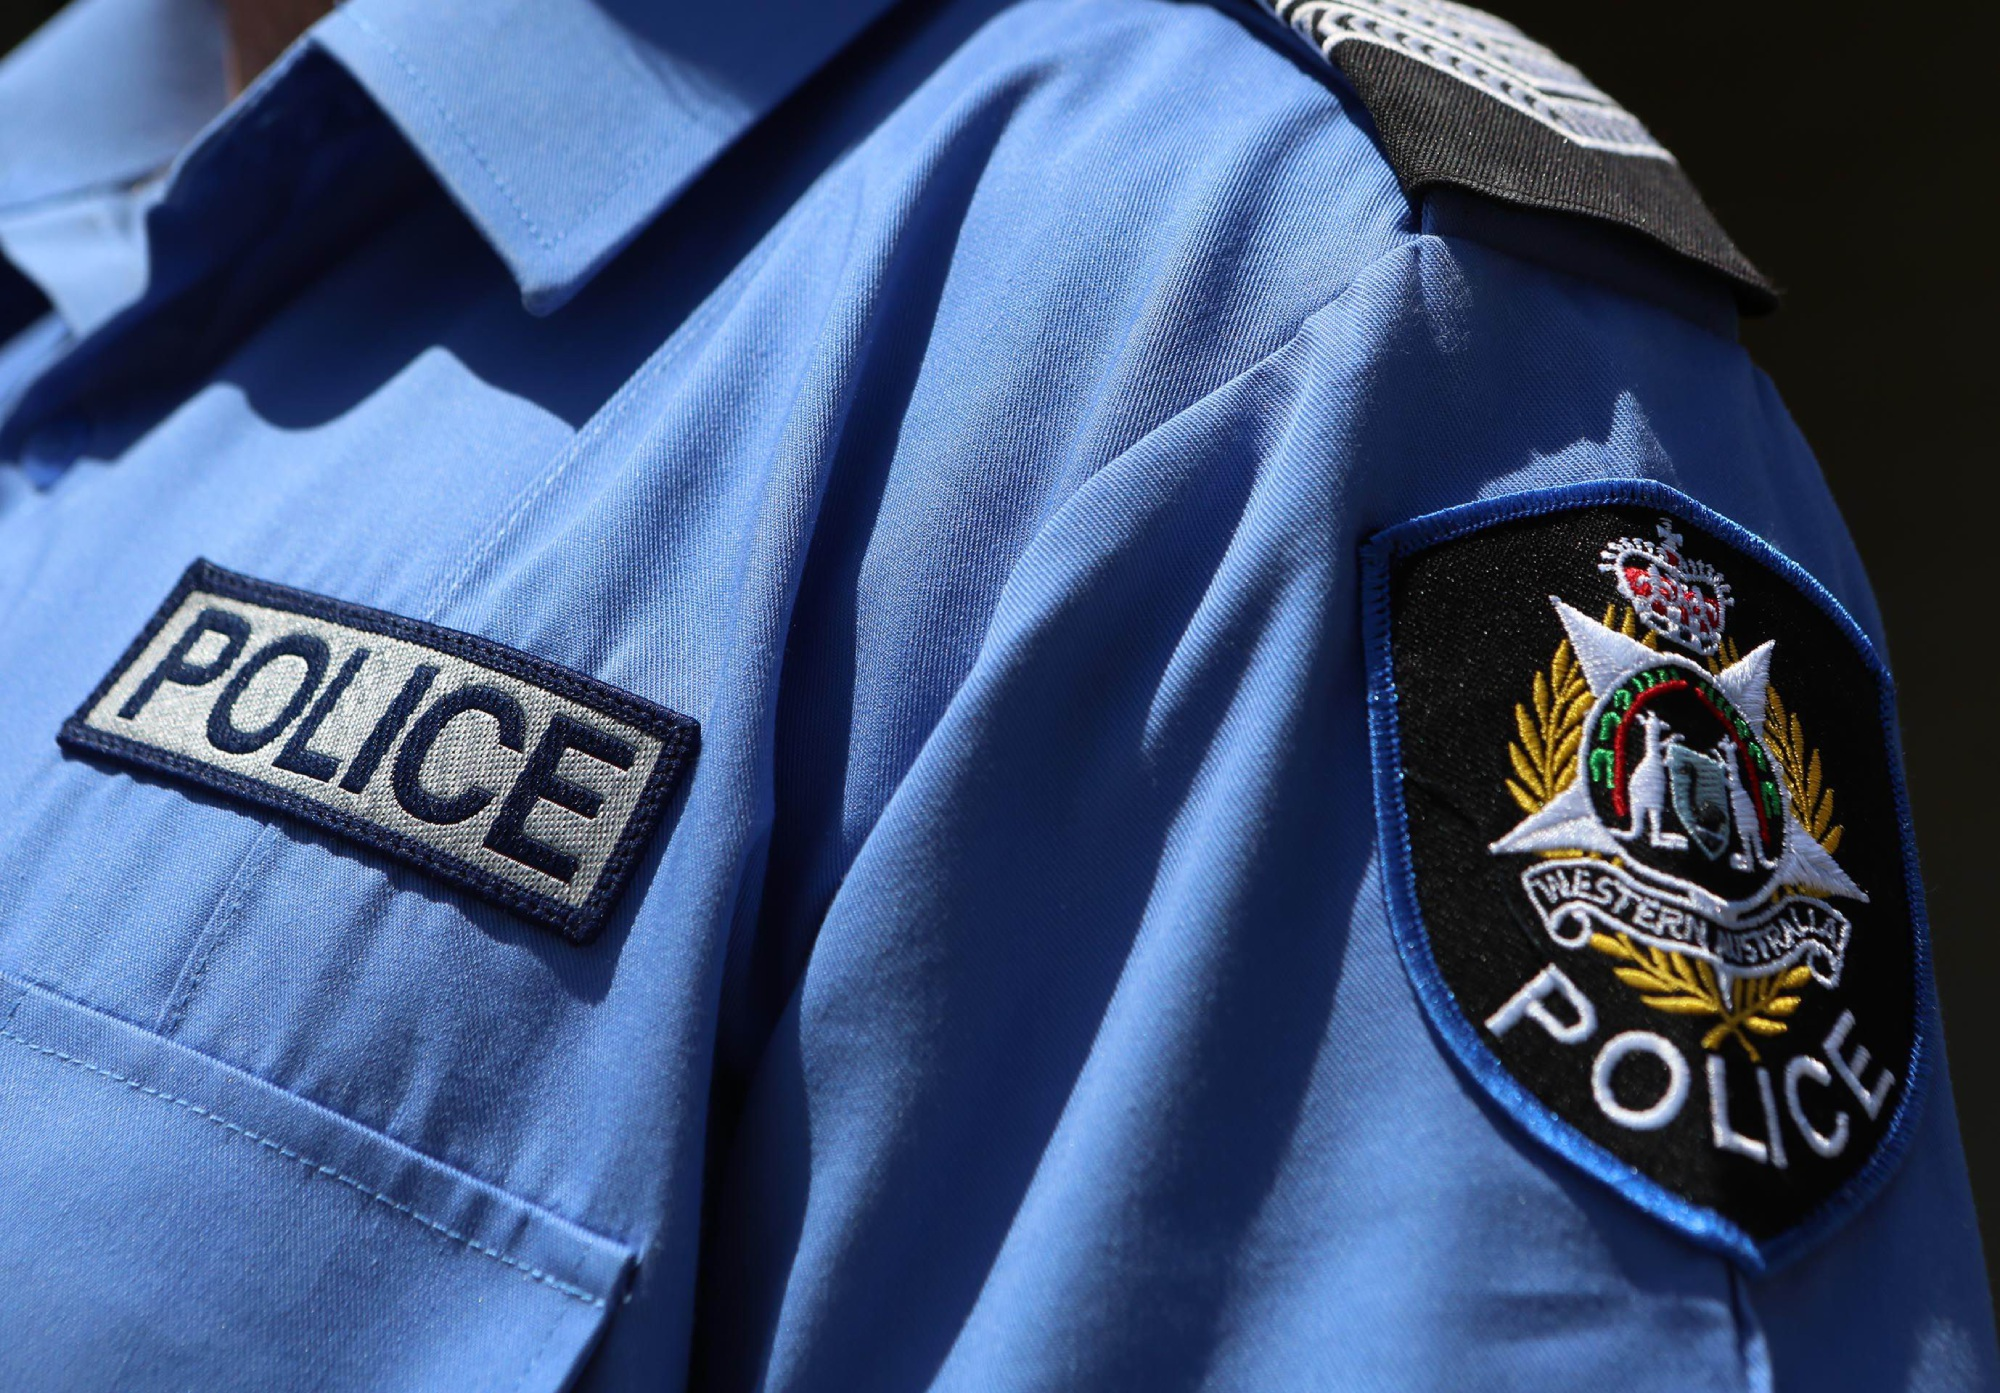 Dianella schools on alert after suspicious vehicle seen near Dianella Heights Primary